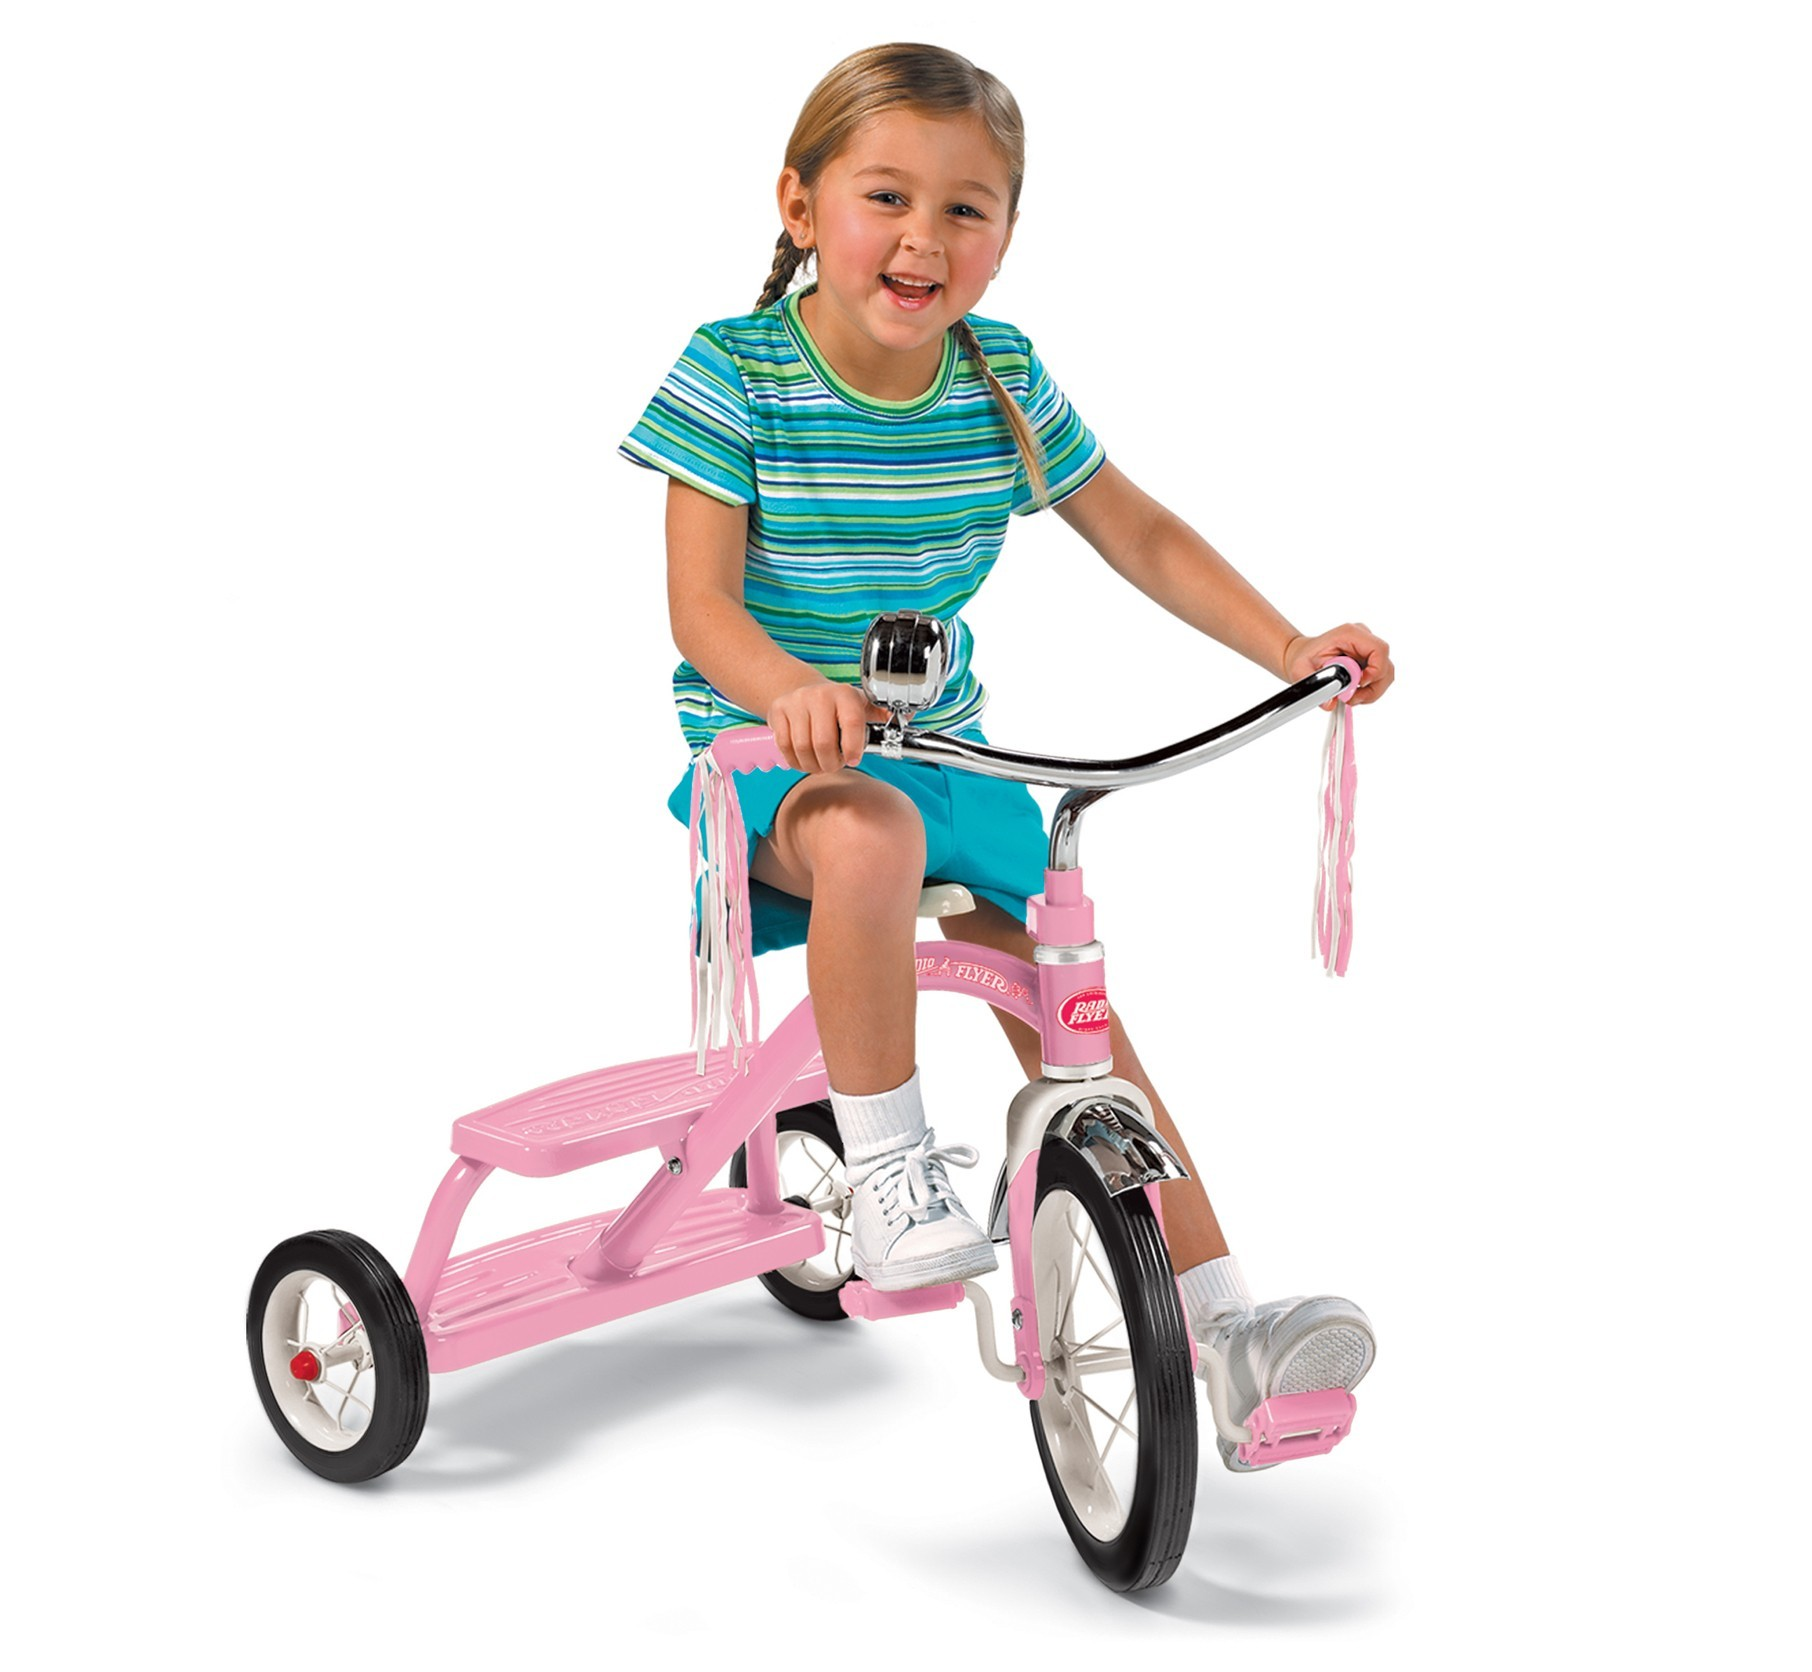 classic-pink-dual-deck-tricycle-lifestyle-model-33p_1.jpg